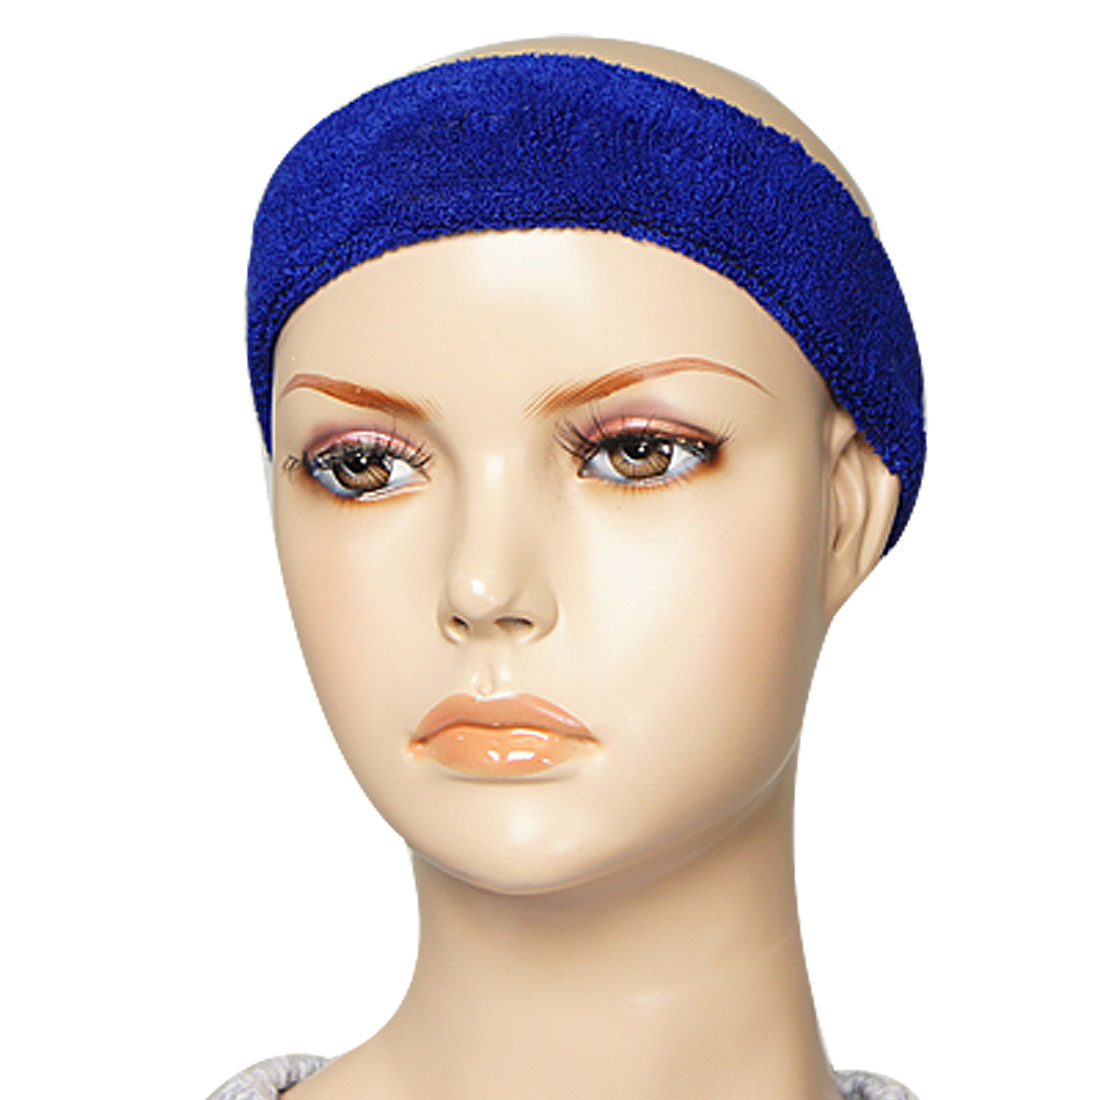 Blue Athlete Sweatband Tennis Sports Protective Elastic Head Band